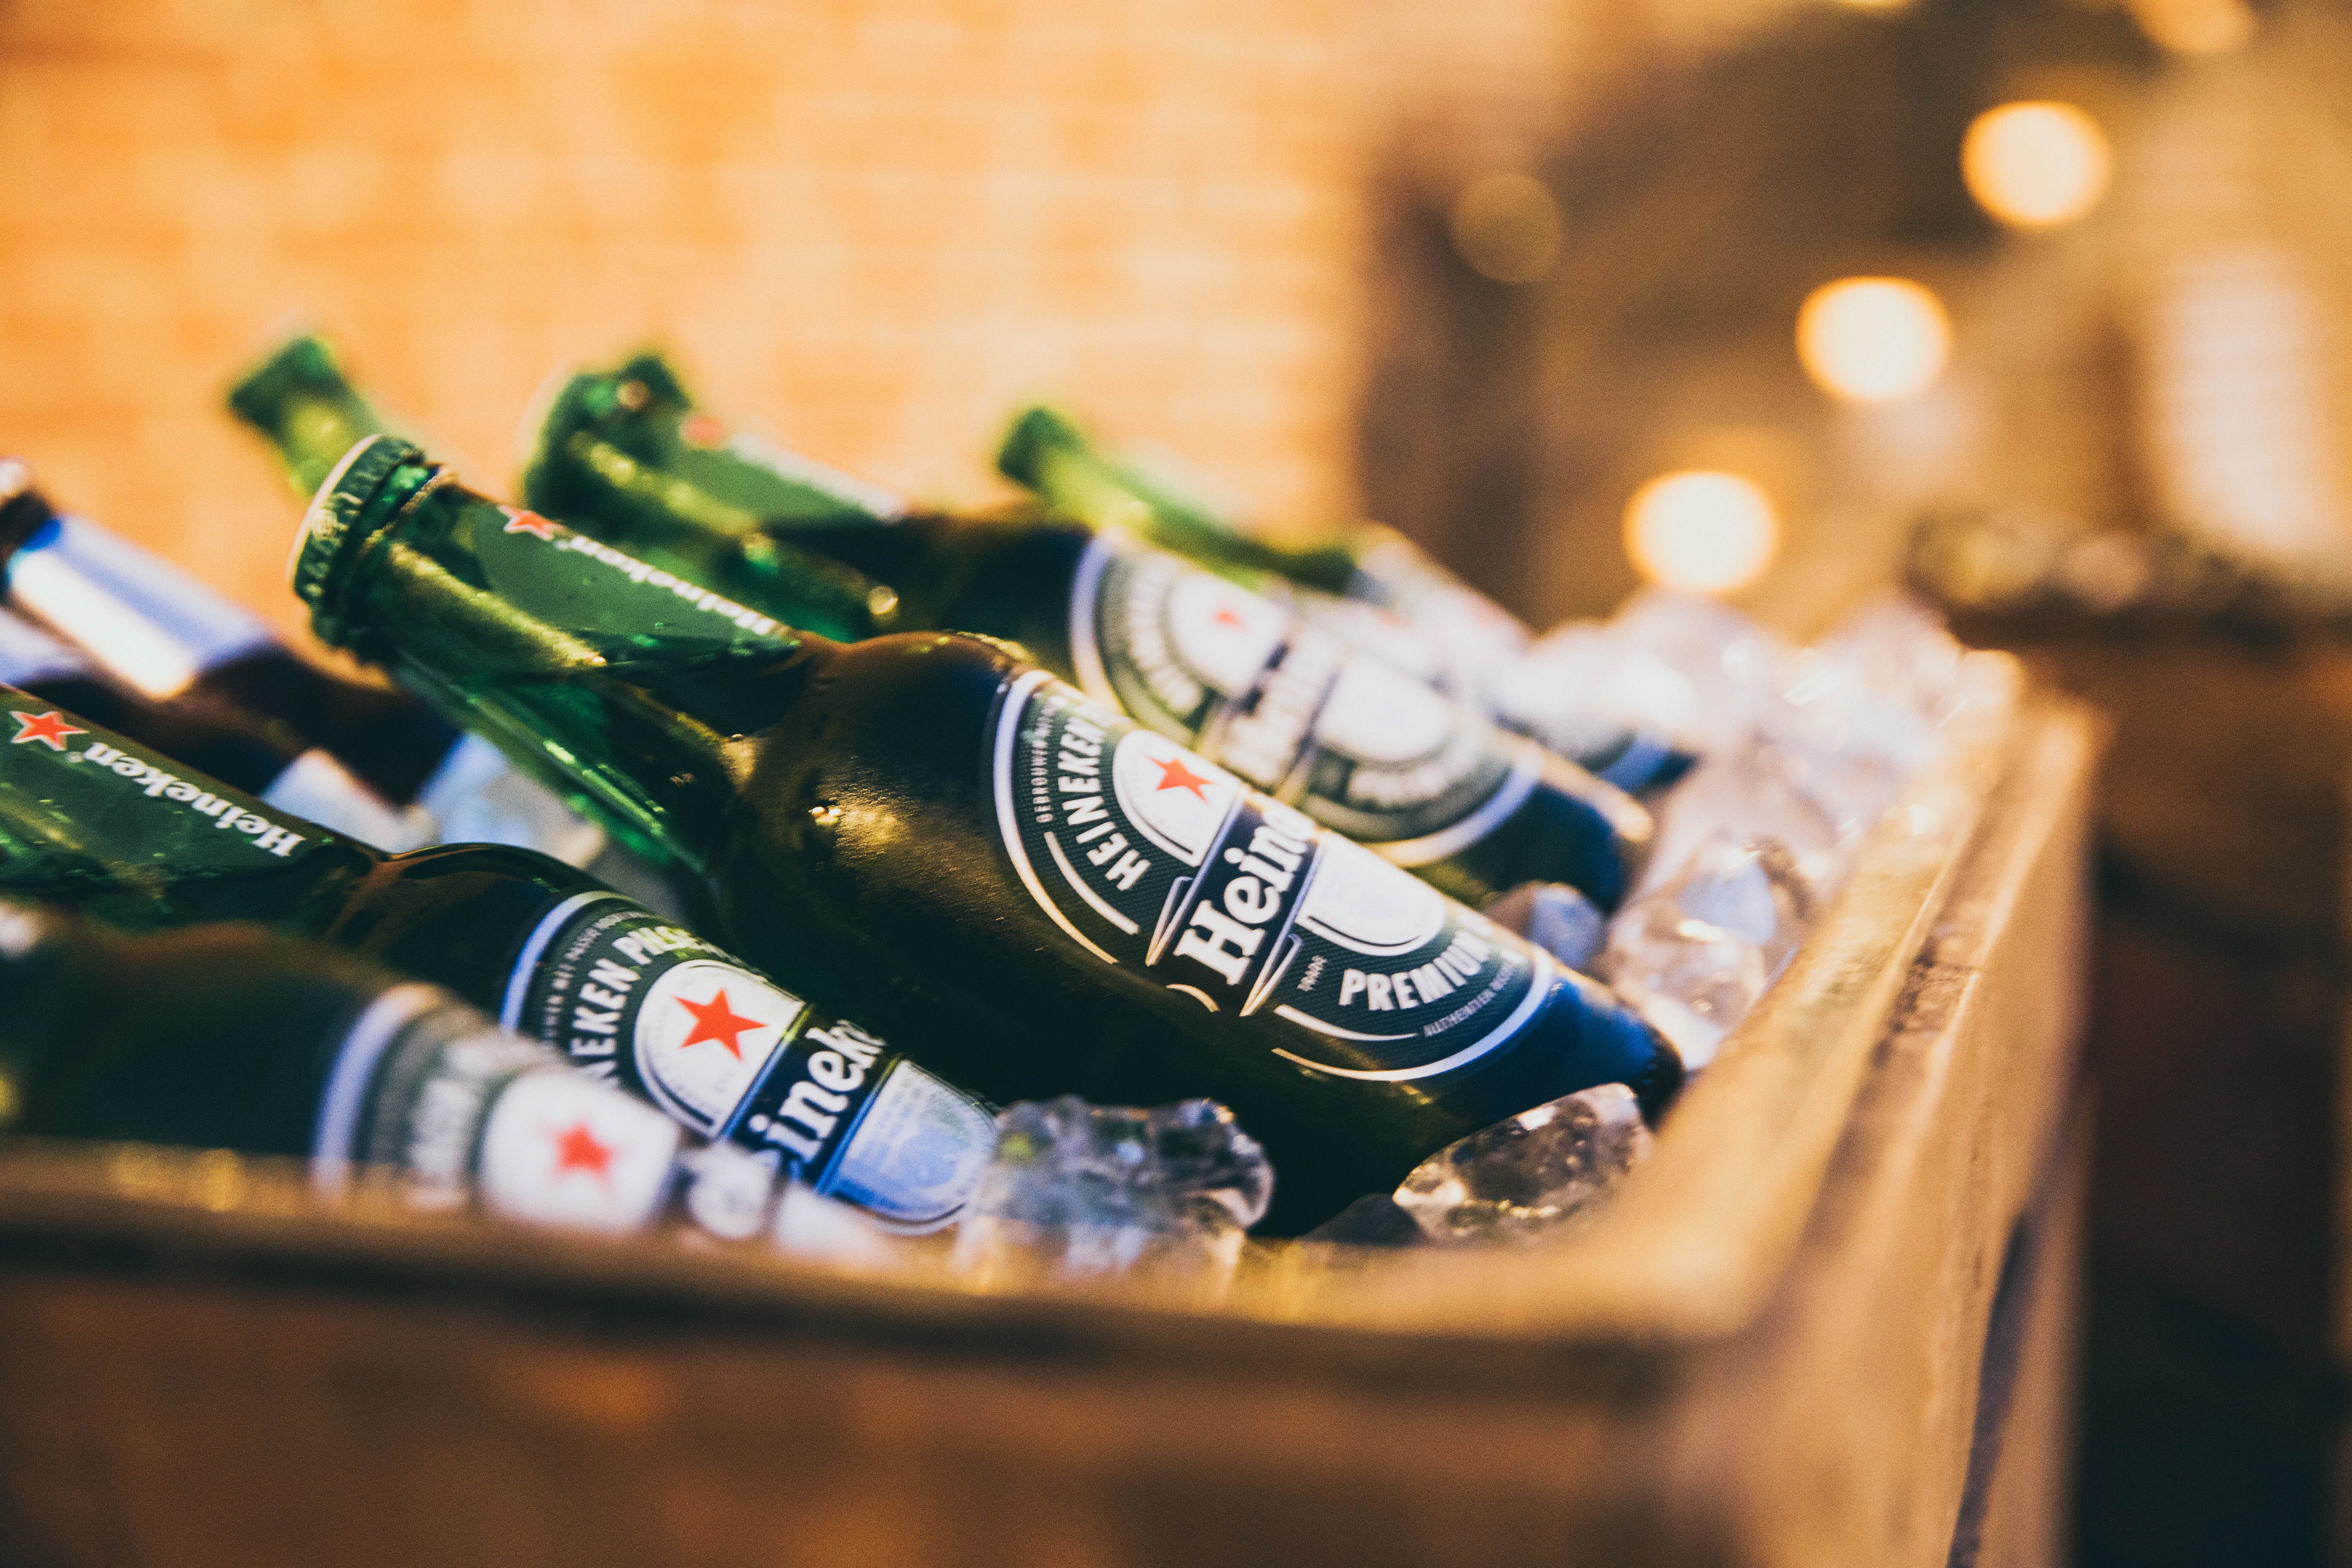 Experience the Heineken, Things to do in Amsterdam in April